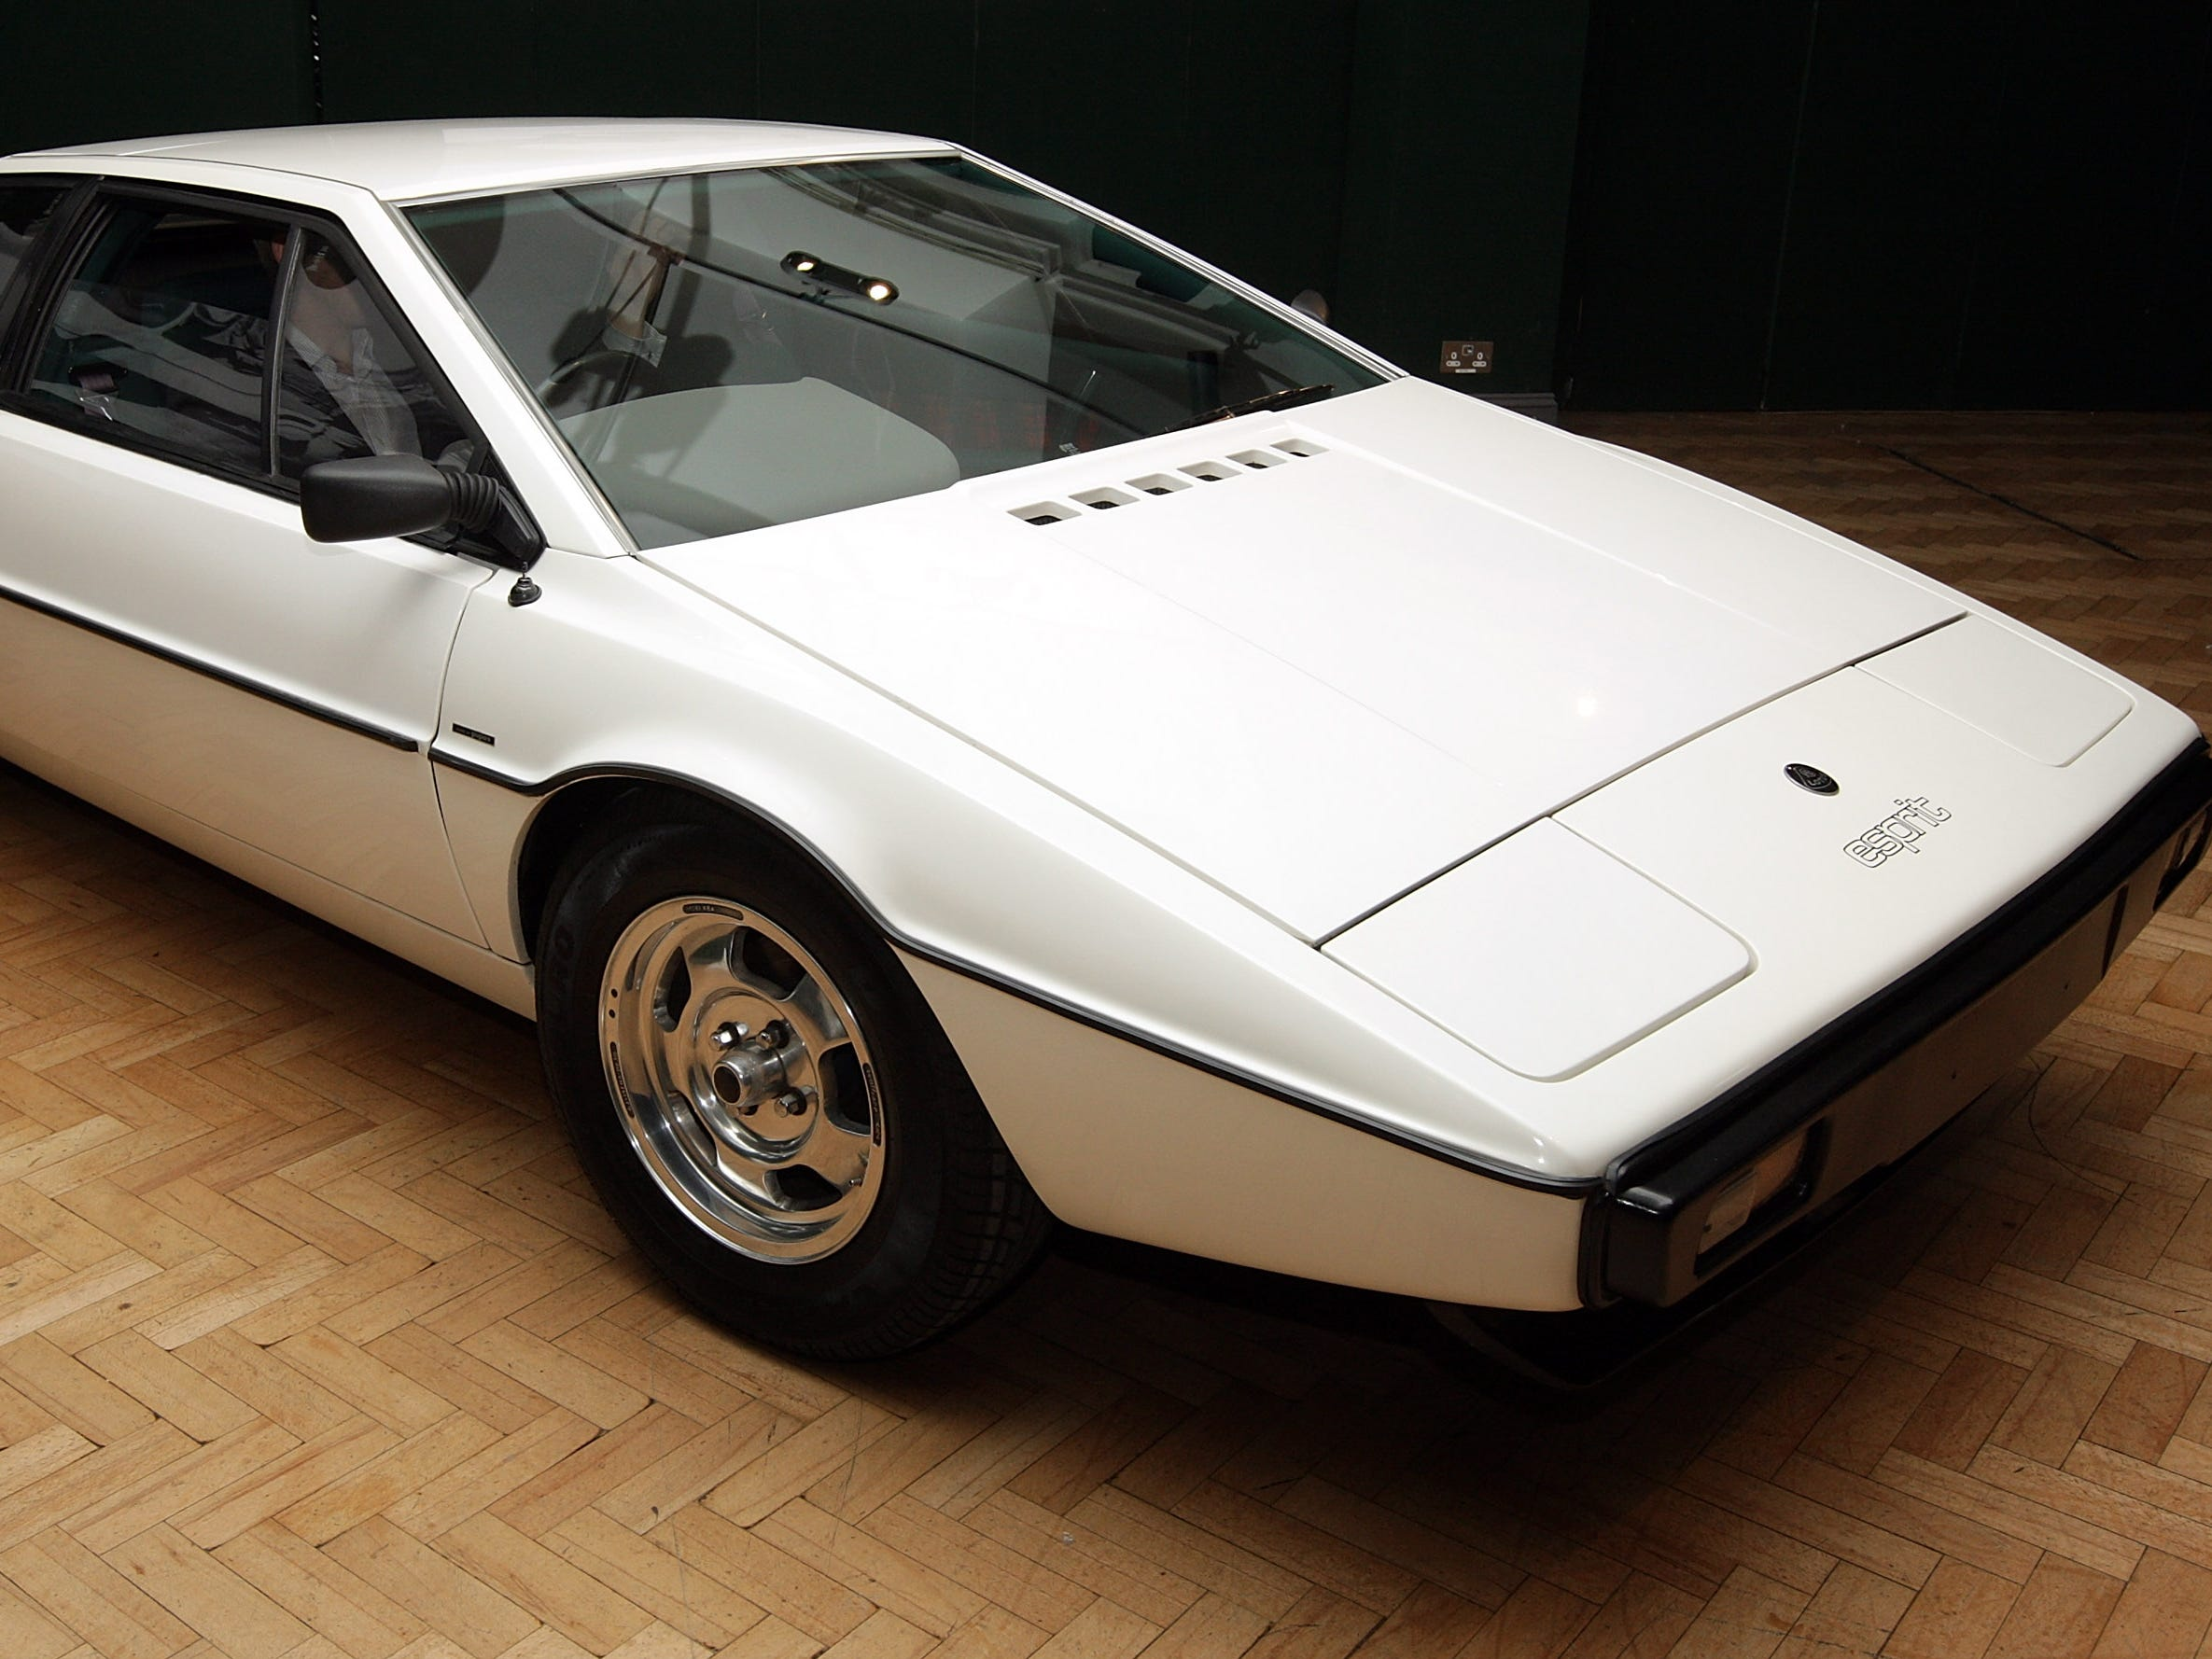 LONDON - NOVEMBER 13:  The white 1976 Lotus Esprit car from the 1977 film ' The Spy Who Loved Me ' is displayed on November 13, 2008 in London, England. The classic car is set to be auctioned in Bonhams' annual motoring sale at Olympia, West London on December 1, 2008 and is expected to fetch up to £120,000.  (Photo by Oli Scarff/Getty Images) ORG XMIT: 83674447 [Via MerlinFTP Drop]